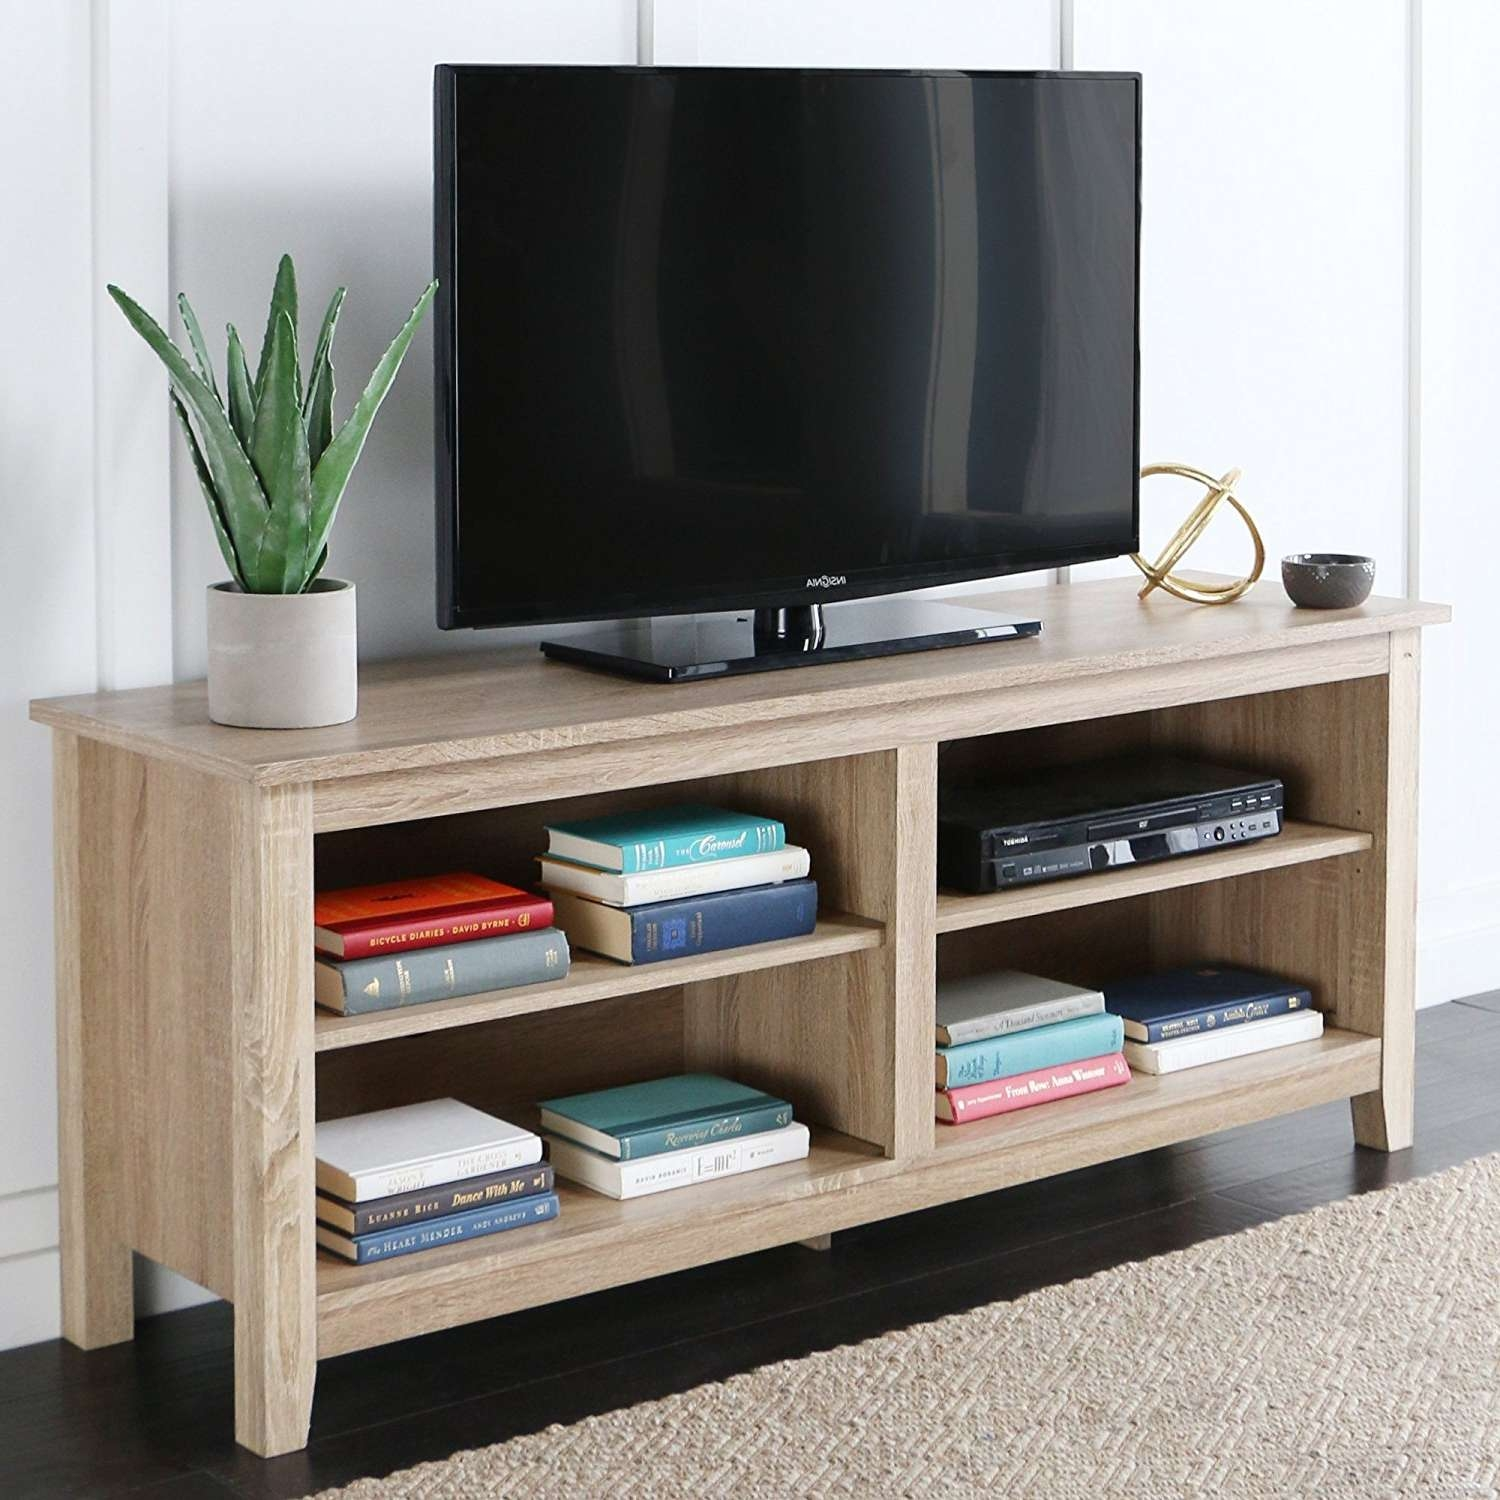 Tv Stand : 241D33E0C79D 1 Beautifulure Tv Stand Photos With Tv Cabinets With Storage (View 16 of 20)